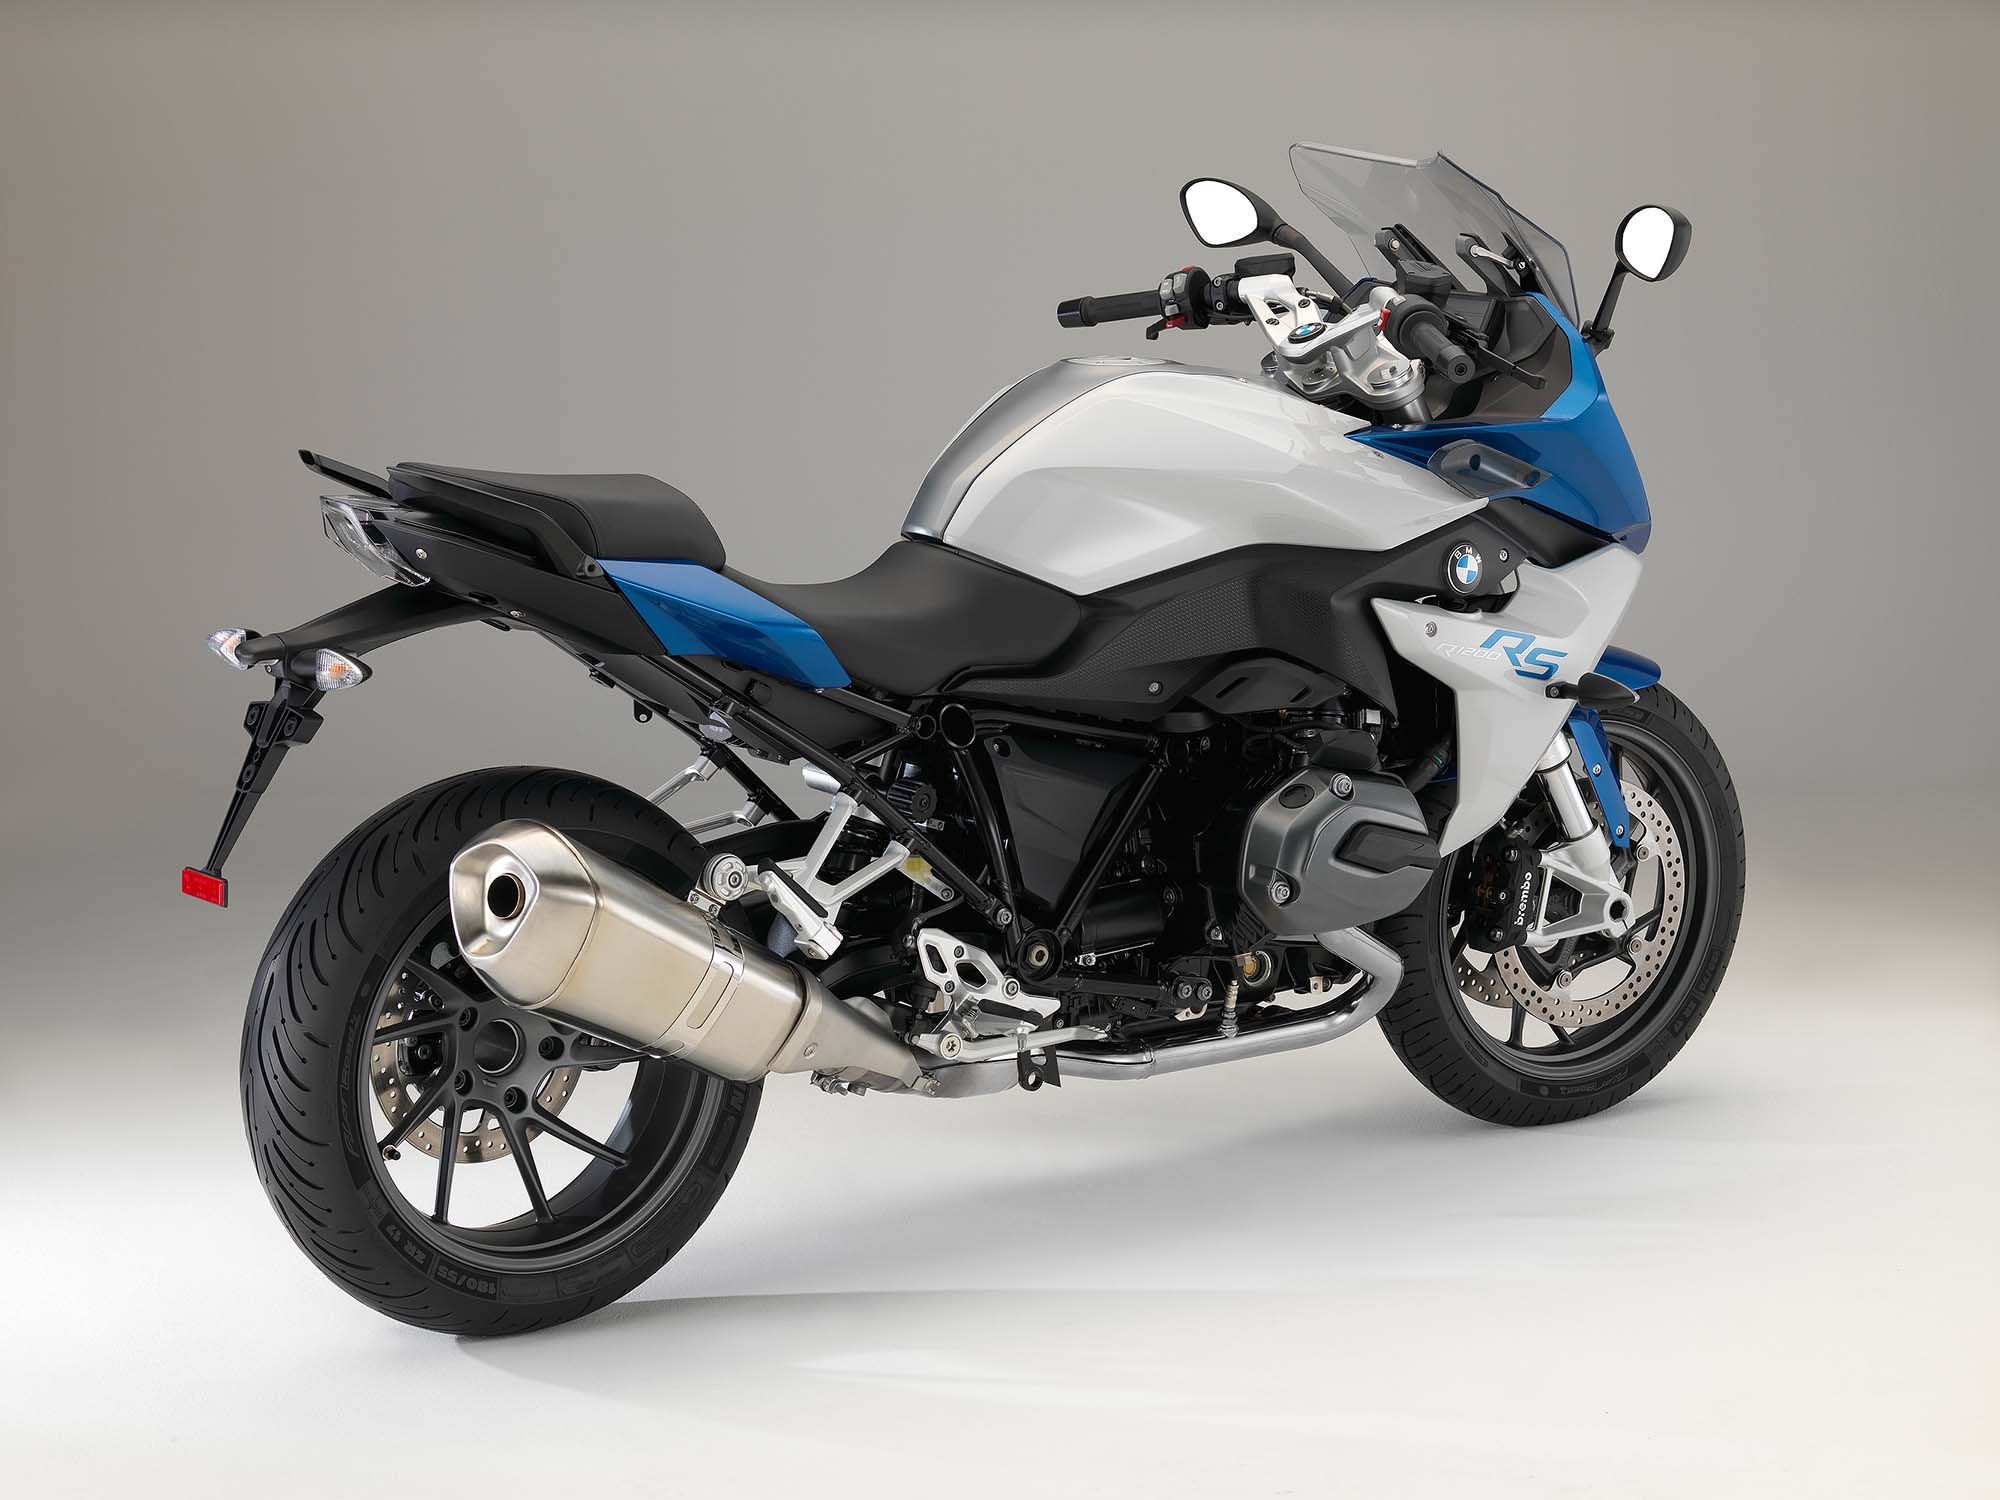 2015 bmw r1200rs mega gallery asphalt rubber. Black Bedroom Furniture Sets. Home Design Ideas